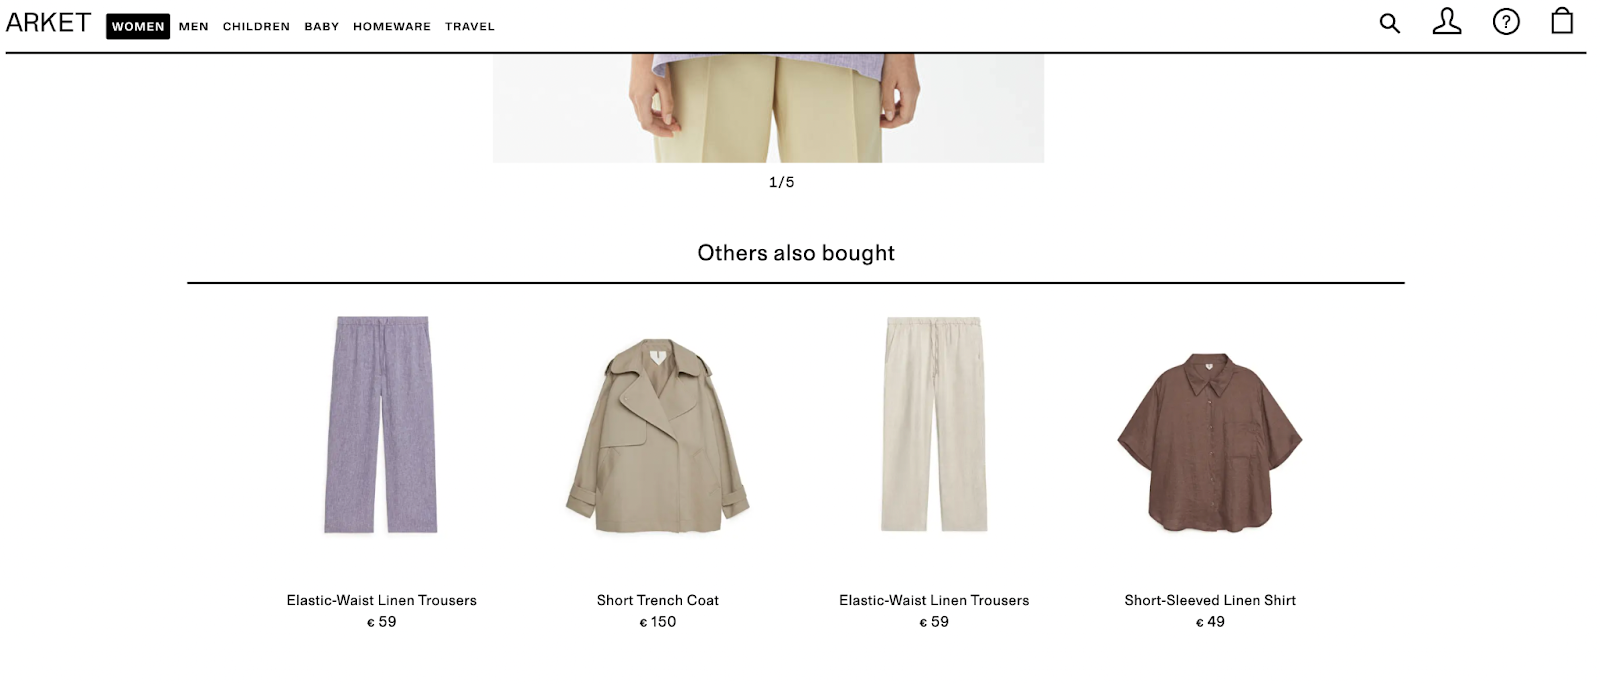 Social Proof eCommerce recommendations